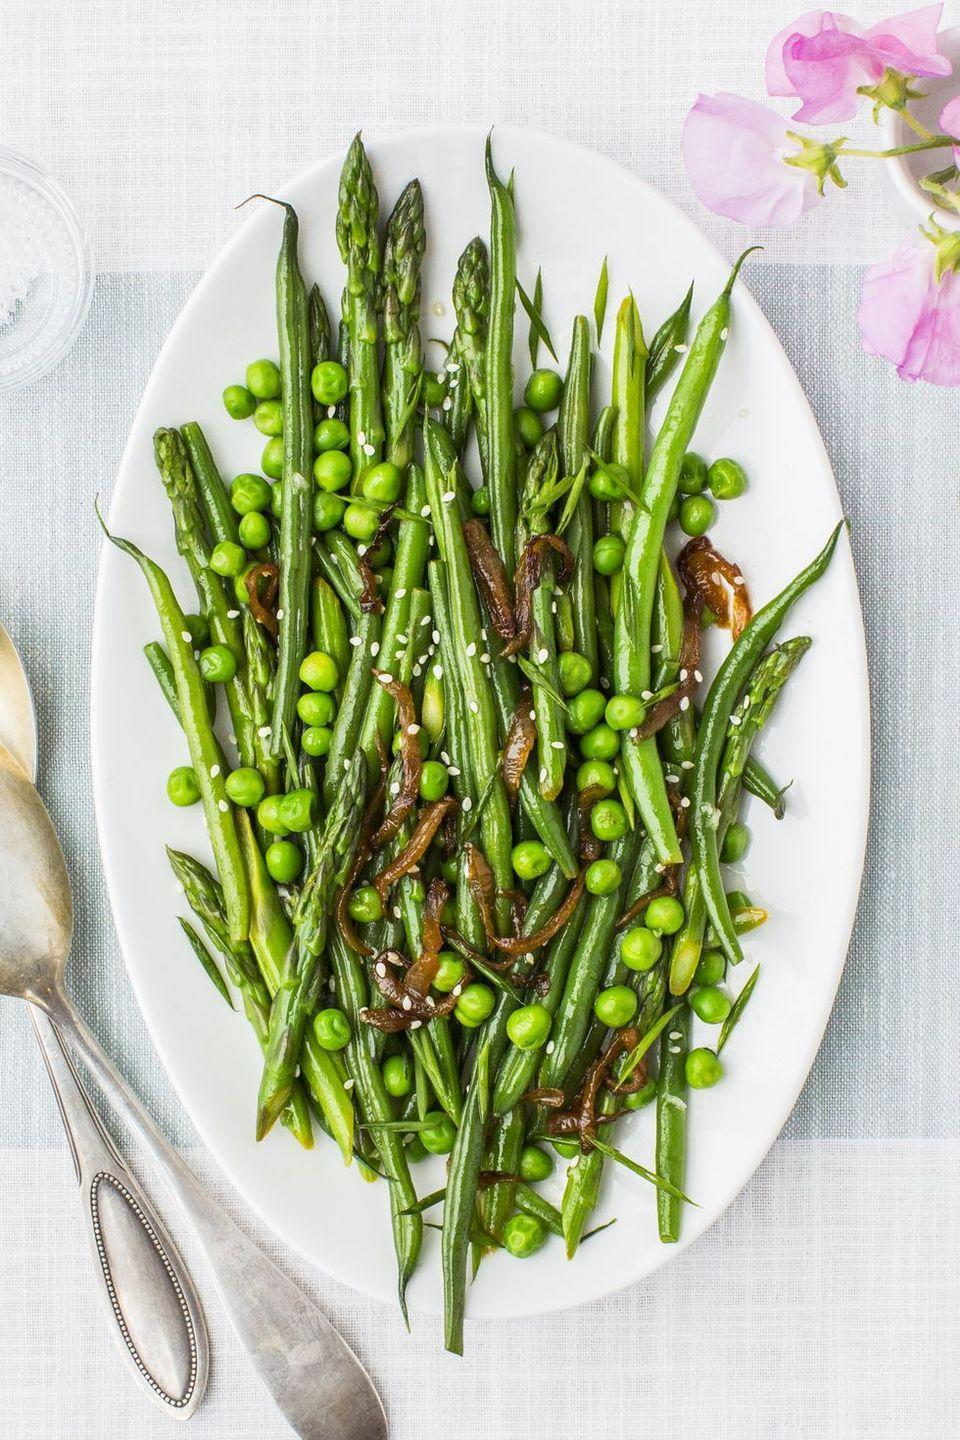 """<p>Vegetables tossed in a lemon juice, chive, sesame, honey and garlic vinaigrette with caramelized onions will be your family's go-to side for the spring holiday and beyond.</p><p><em><a href=""""https://www.goodhousekeeping.com/food-recipes/a43200/lemony-asparagus-beans-peas-recipe/"""" rel=""""nofollow noopener"""" target=""""_blank"""" data-ylk=""""slk:Get the recipe for Lemony Asparagus, Beans and Peas »"""" class=""""link rapid-noclick-resp"""">Get the recipe for Lemony Asparagus, Beans and Peas »</a></em></p><p><strong>RELATED: </strong><a href=""""https://www.goodhousekeeping.com/food-recipes/g30682230/easy-spring-recipes/"""" rel=""""nofollow noopener"""" target=""""_blank"""" data-ylk=""""slk:30 Spring Recipes That Make the Most of This Season's Produce"""" class=""""link rapid-noclick-resp"""">30 Spring Recipes That Make the Most of This Season's Produce</a></p>"""